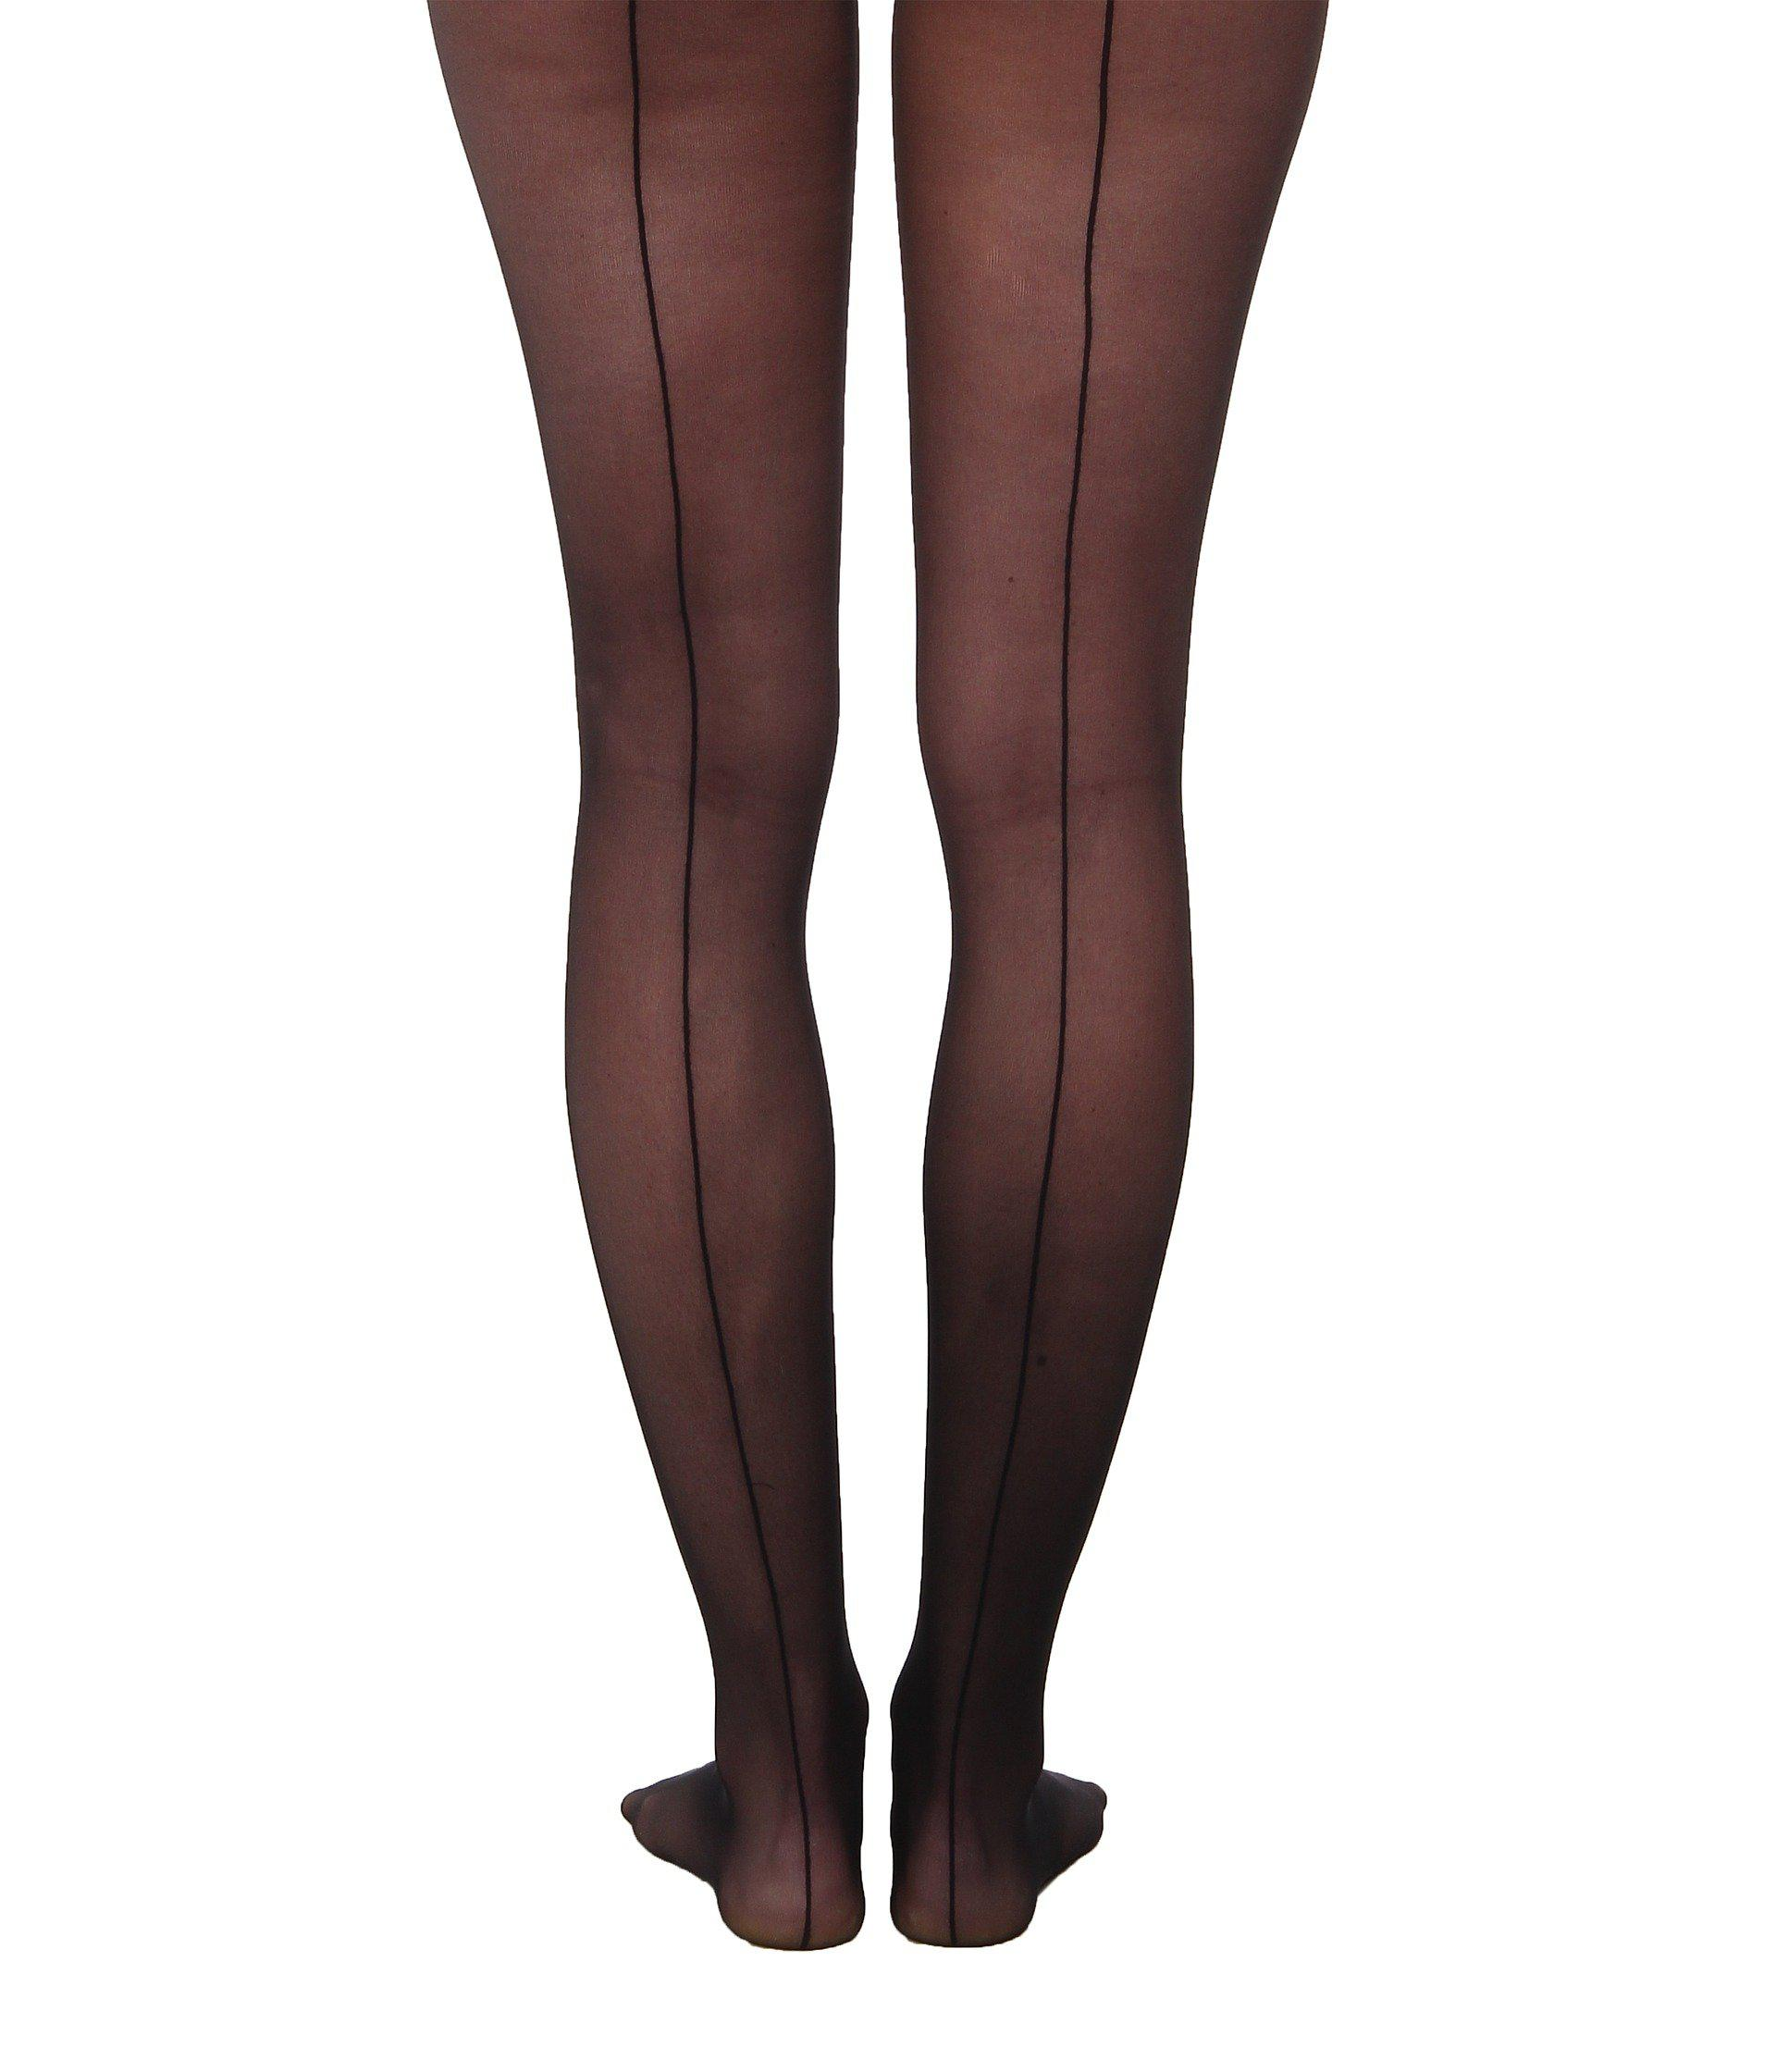 75f8fc314e9 Wolford Individual 10 Back Seam Tights (black) Hose in Black - Lyst